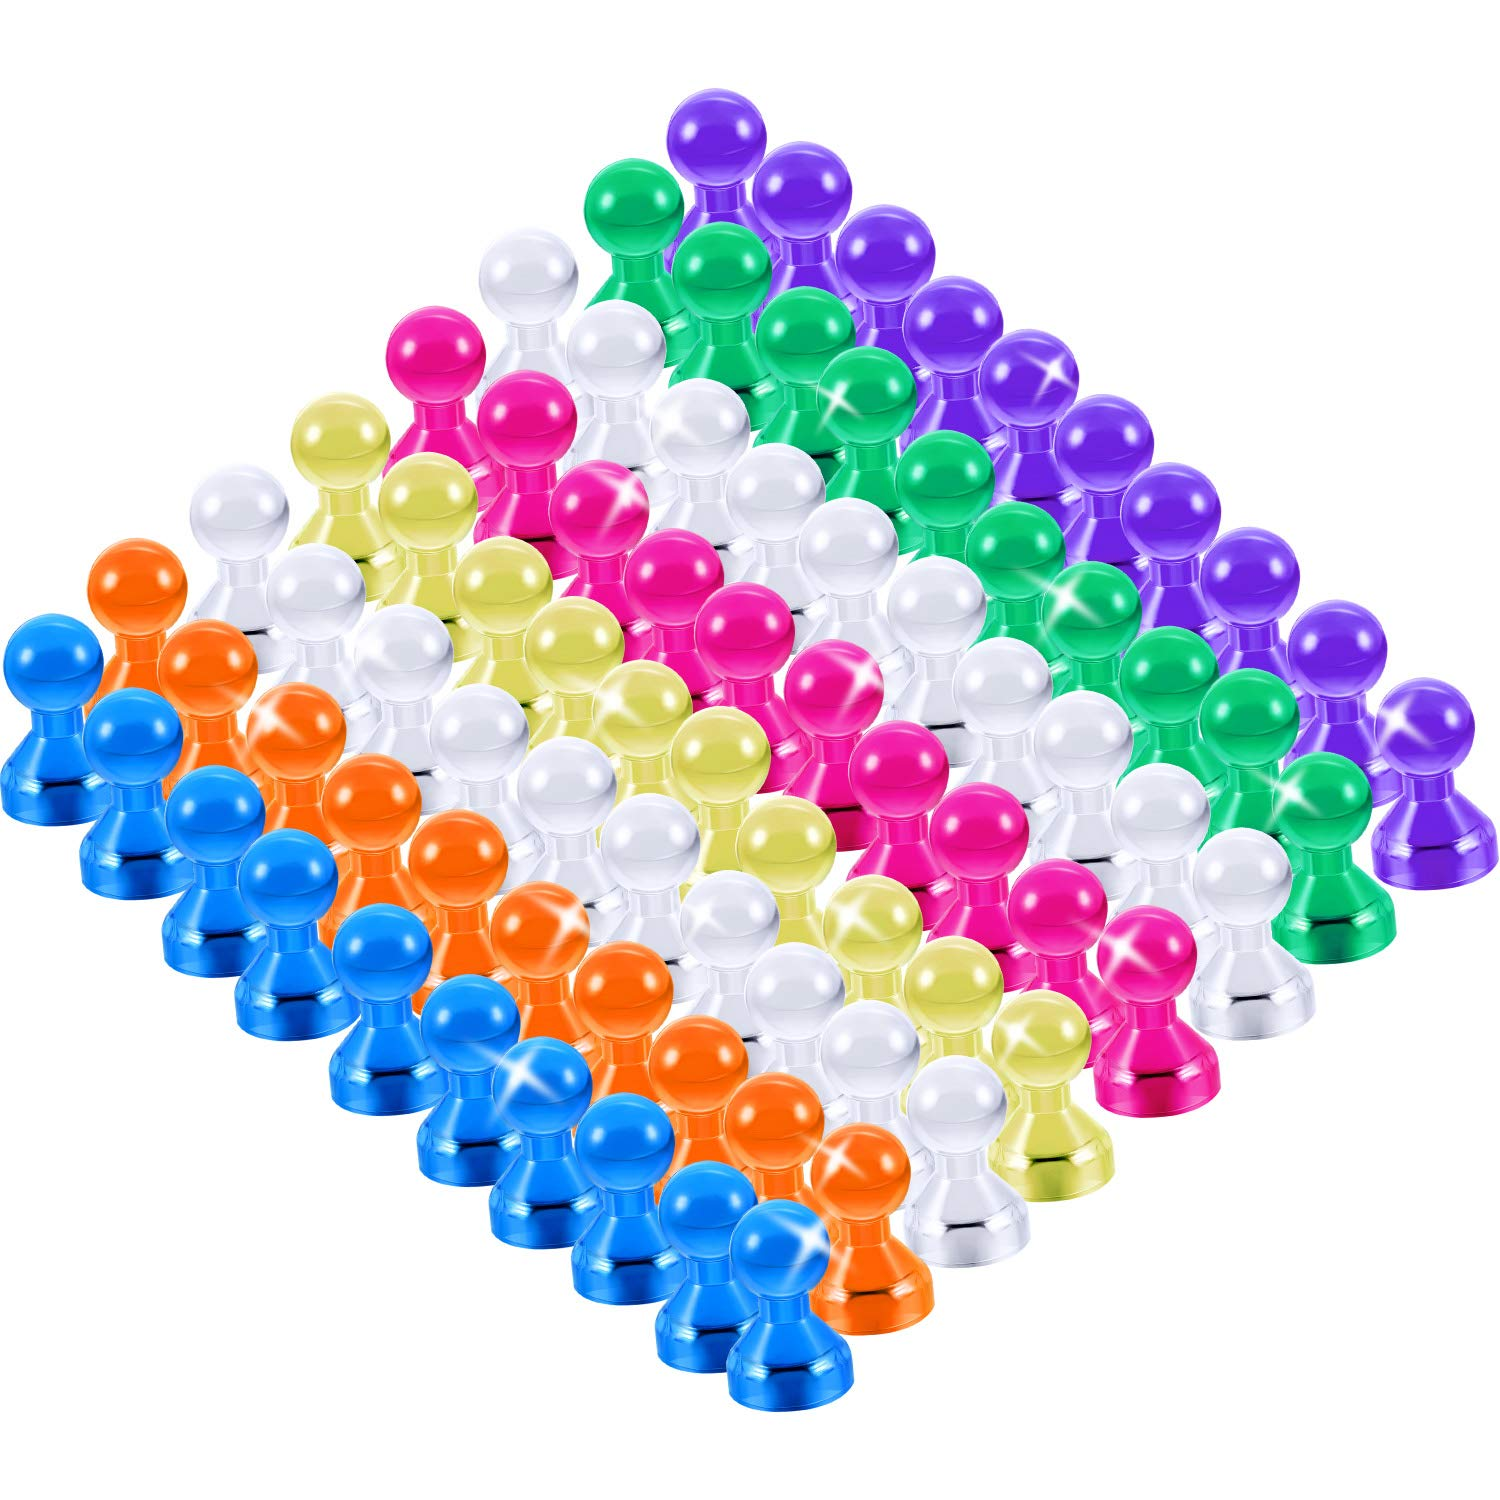 Zhehao 80 Pieces Colorful Magnetic Push Pins for Fridge Magnets Calendars Magnet Whiteboards Magnets Dry Erase Board Magnets Maps Magnet at Home School Classroom Office by Zhehao (Image #2)